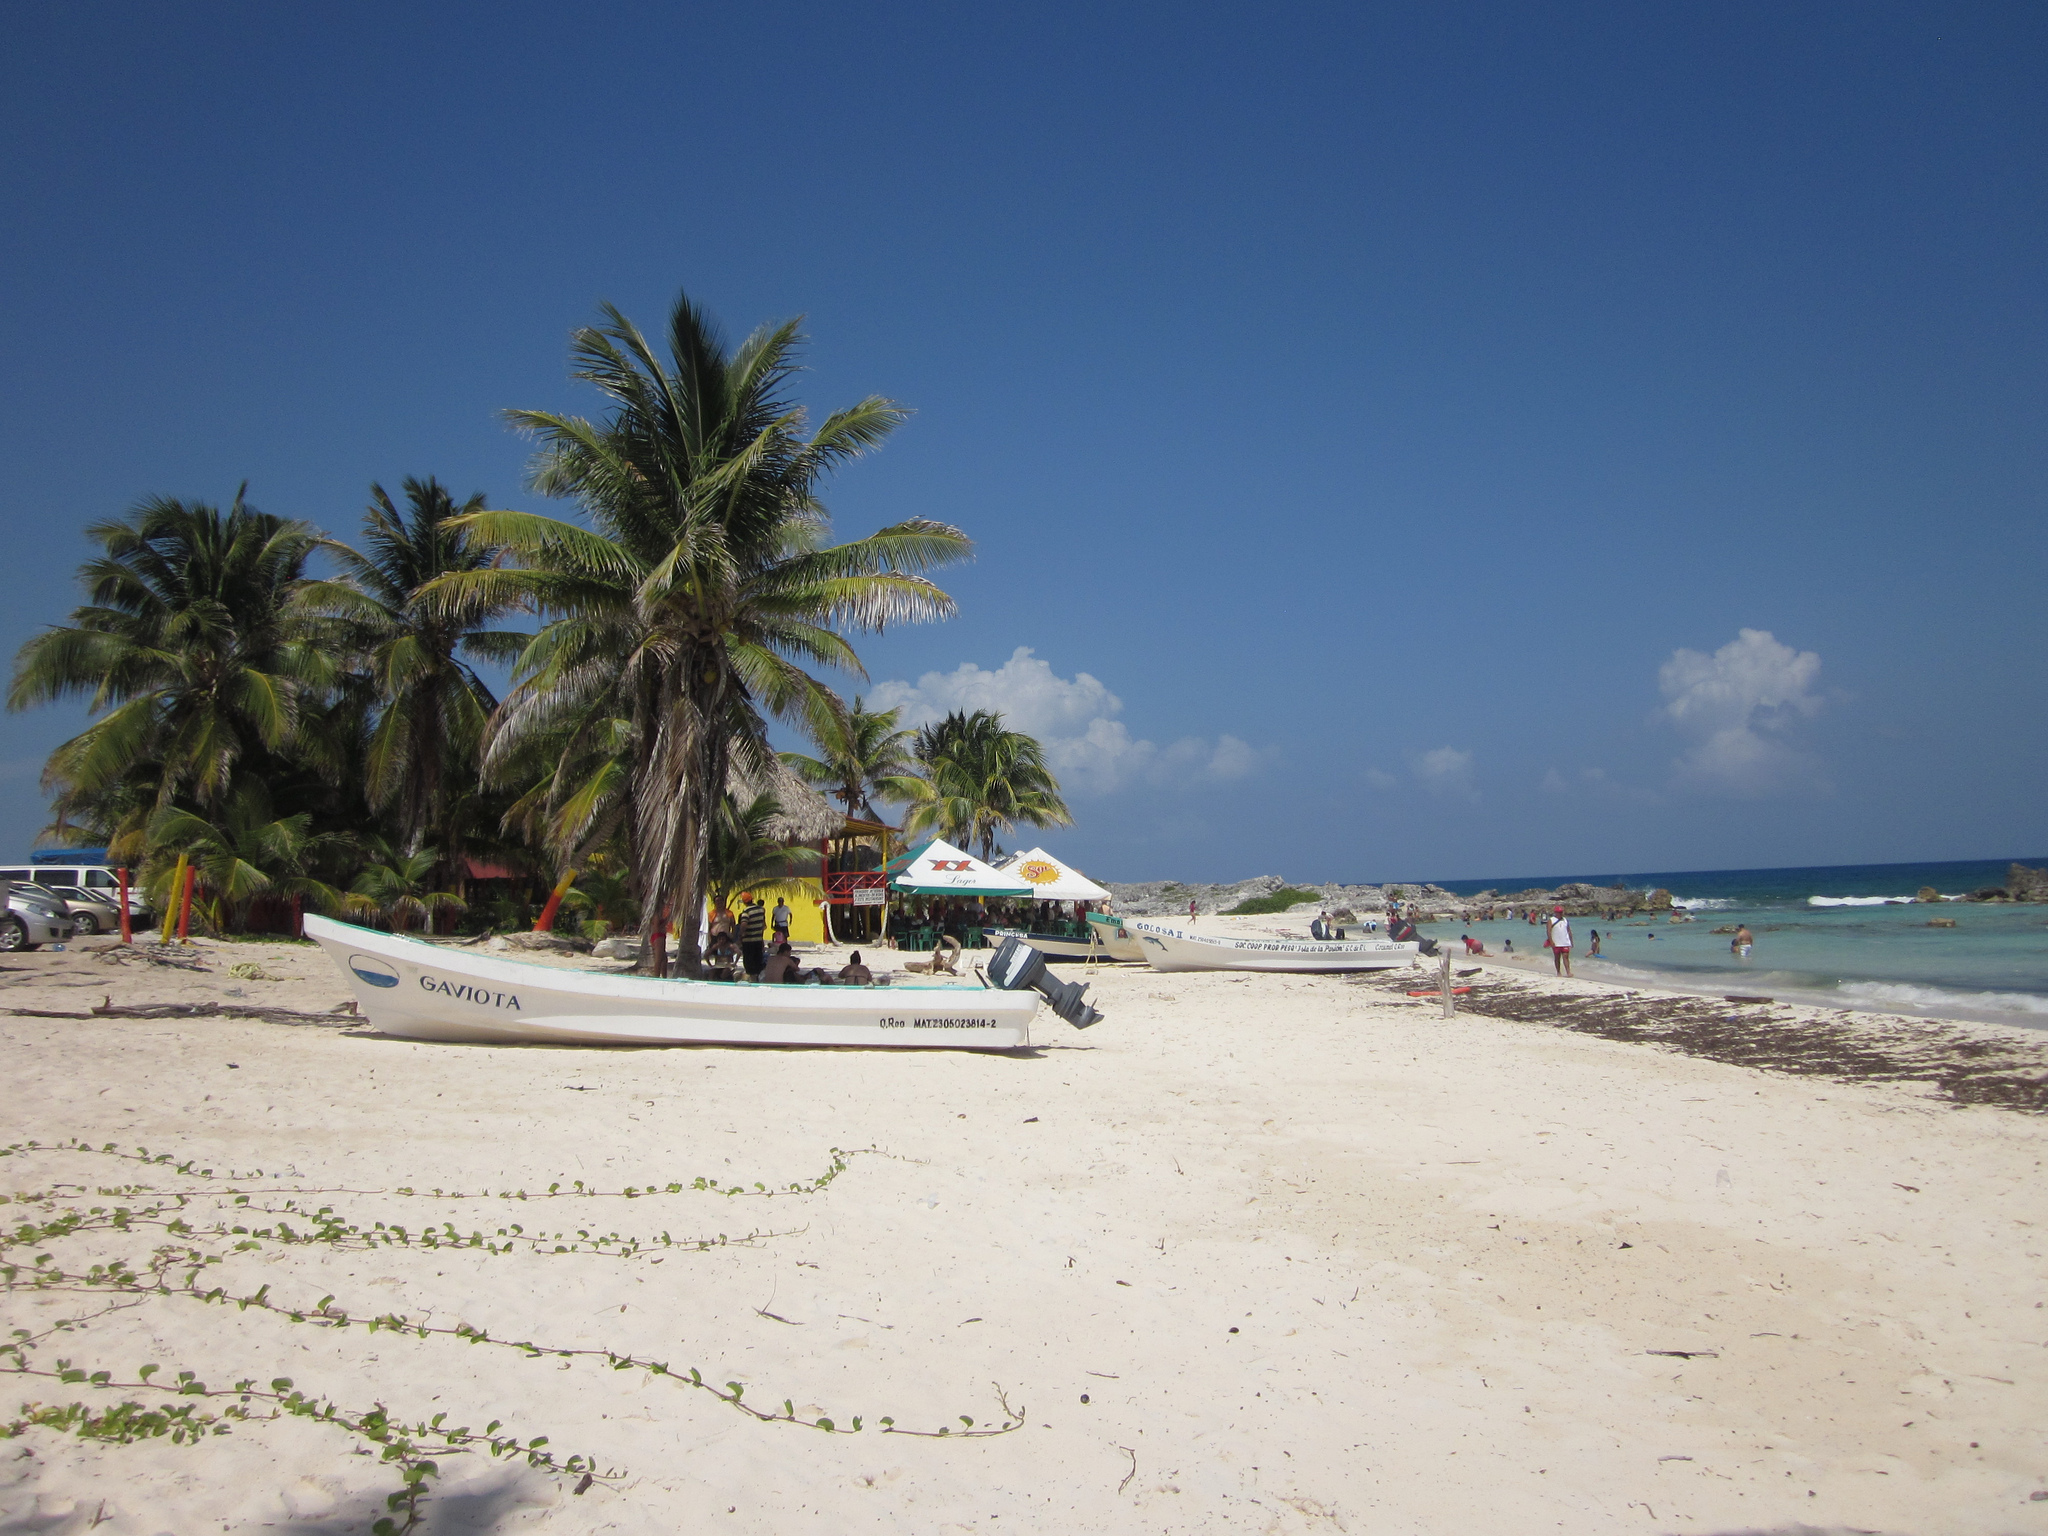 Cozumel beach with boat on shore